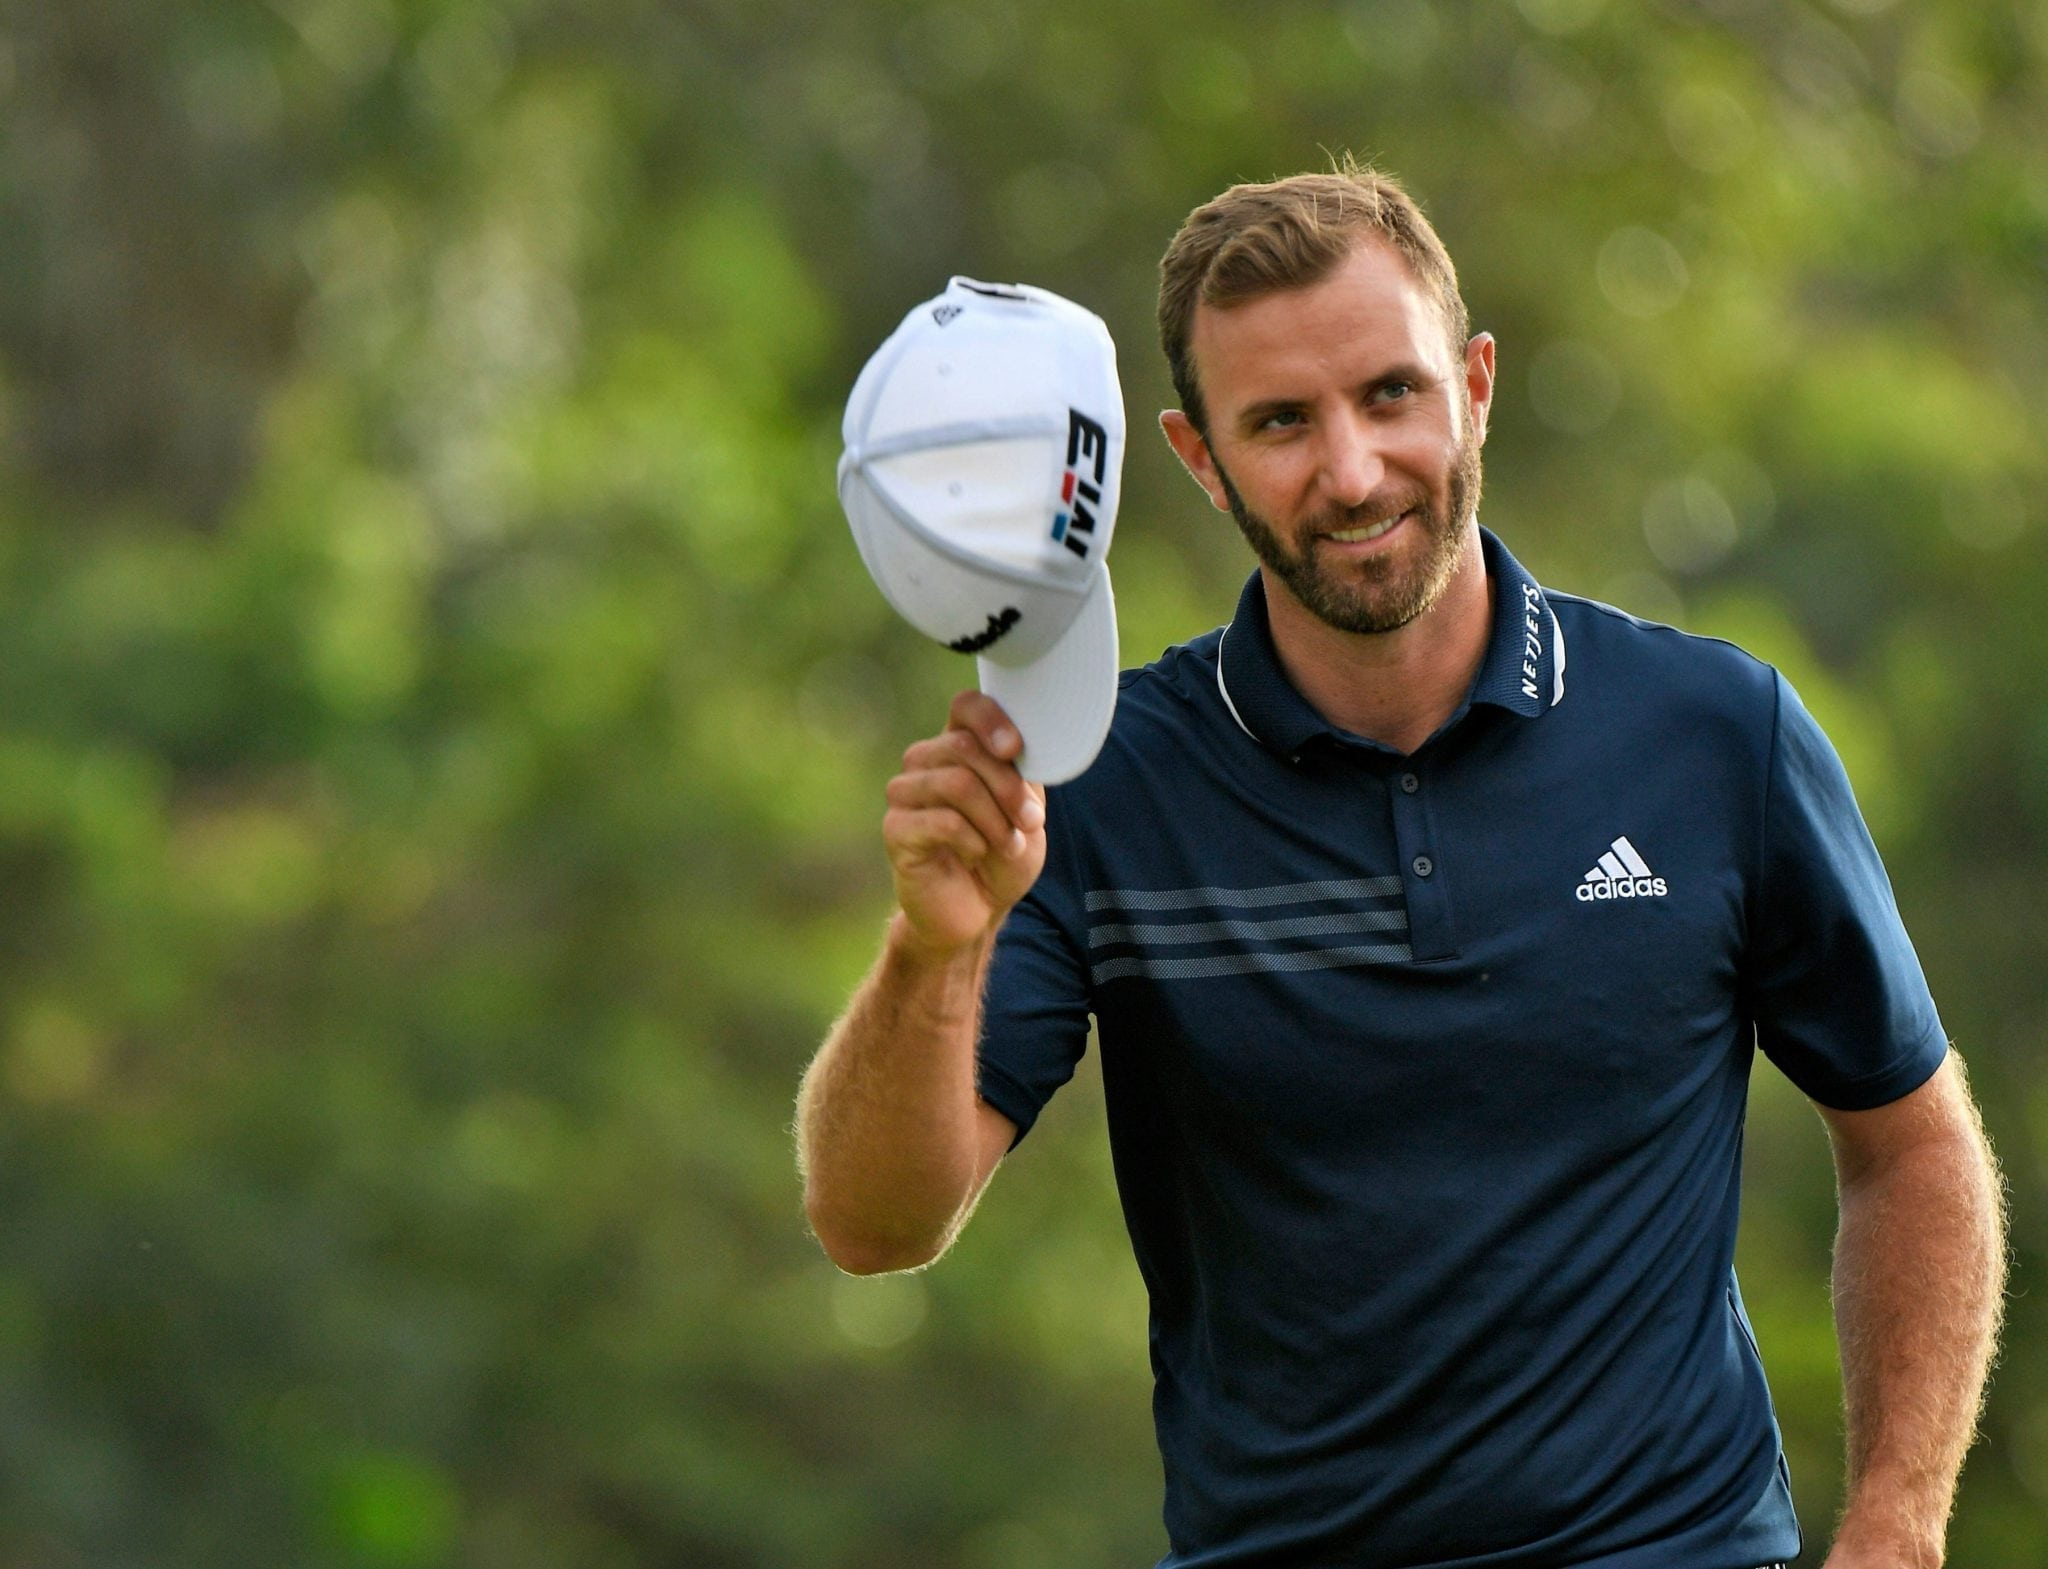 Dustin Johnson Exhibits Champion Levels of Self Assurance